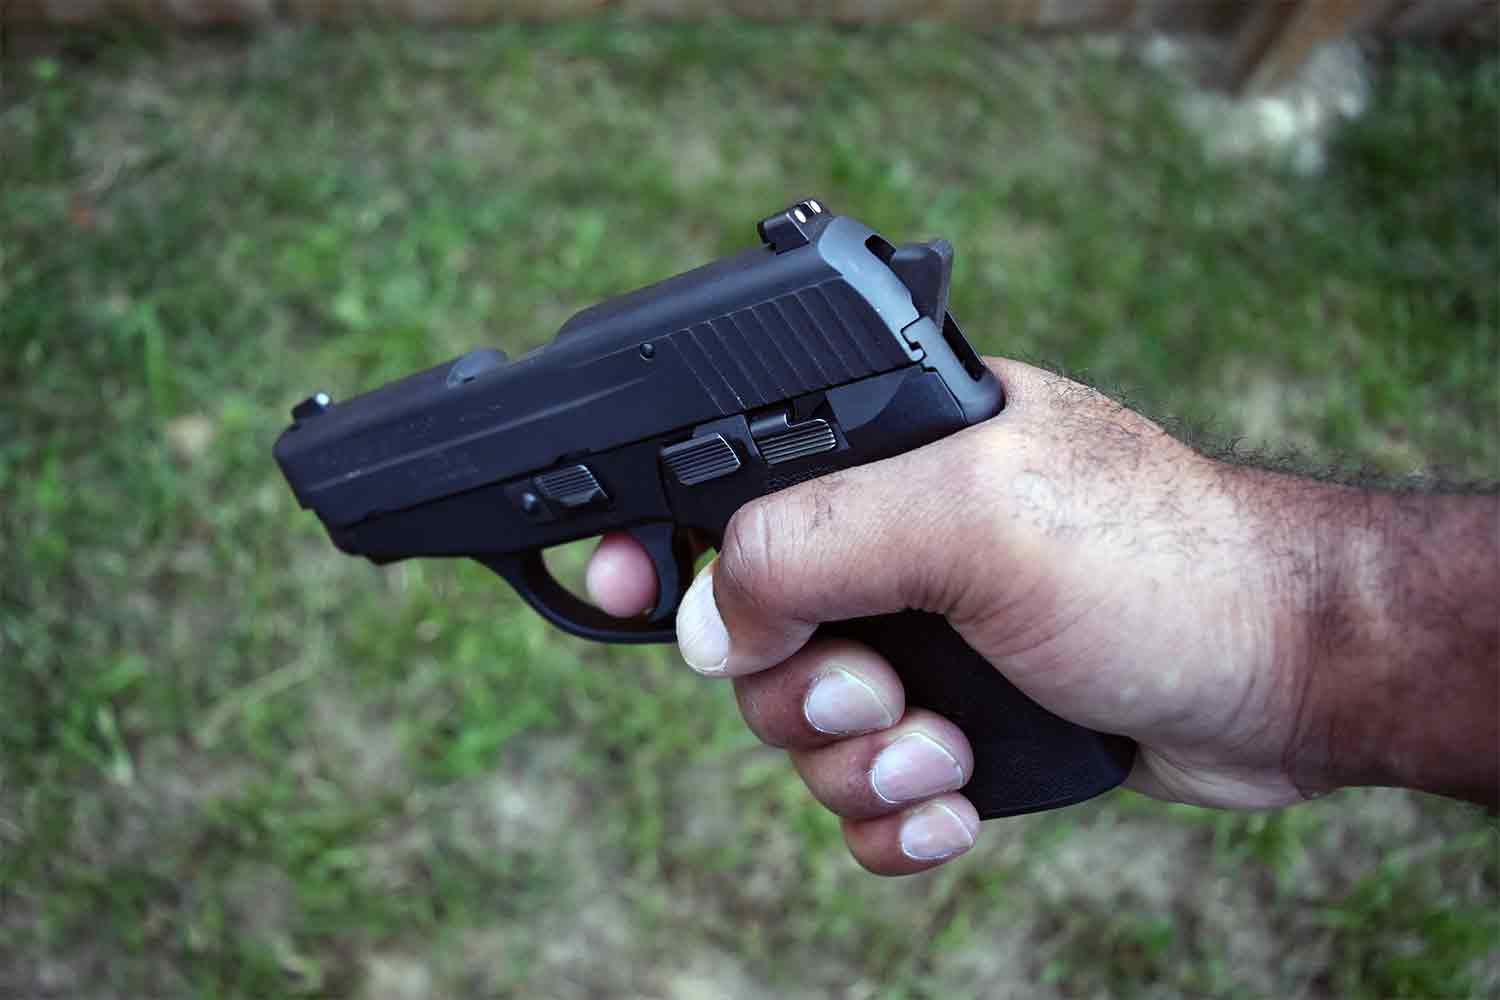 Georgia Man Shoots His Girlfriend 4 Times After His Unemployment Password Didn't Work